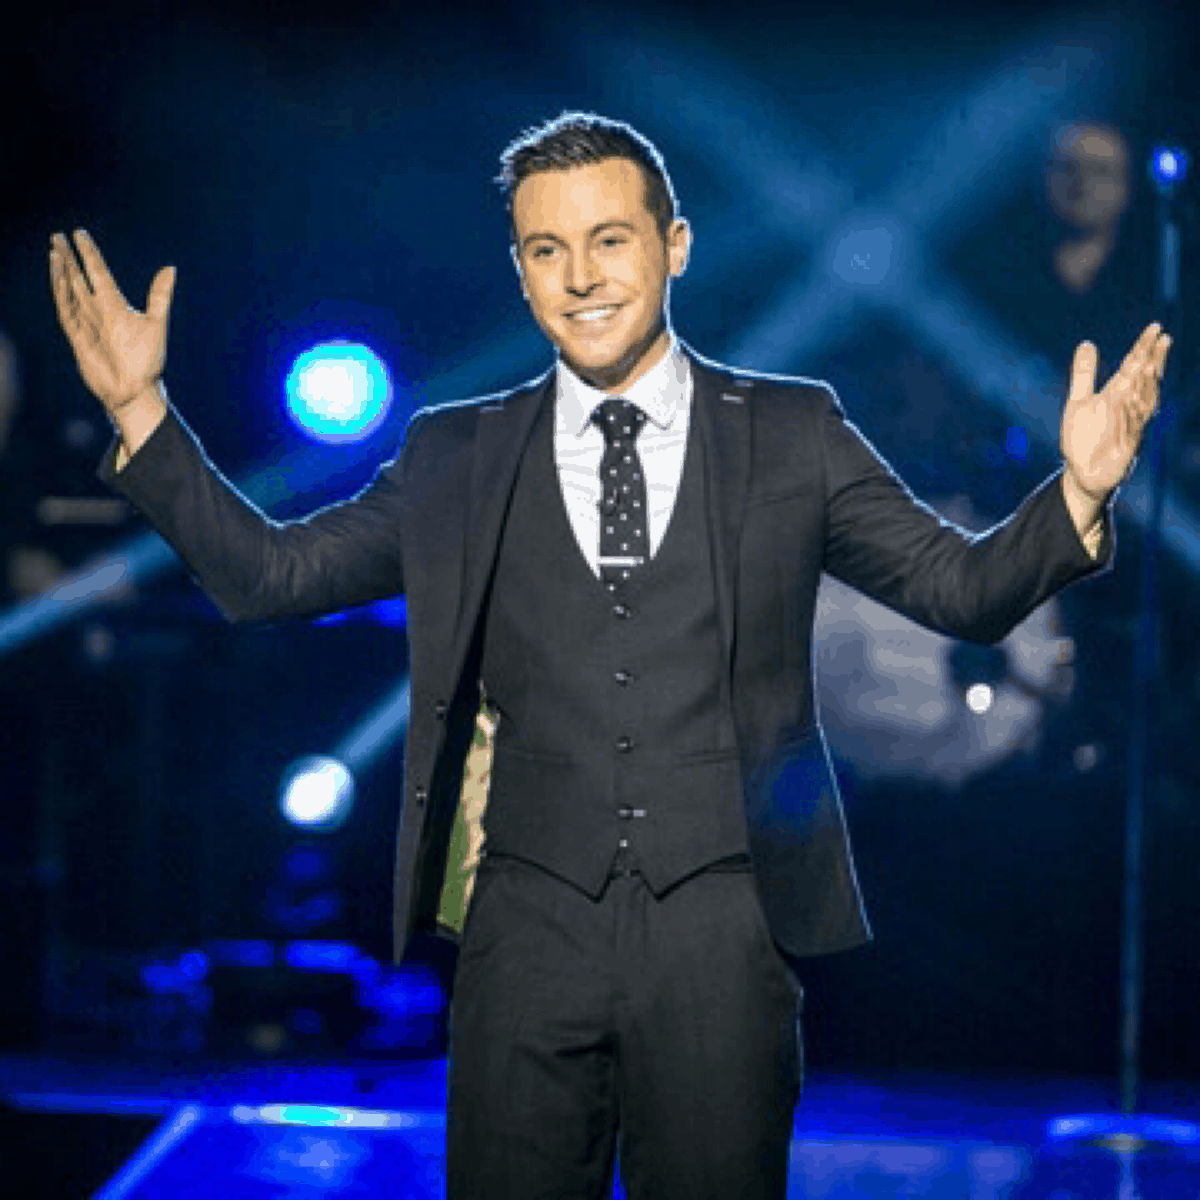 Nathan Carter performing at The British Country Music Festival